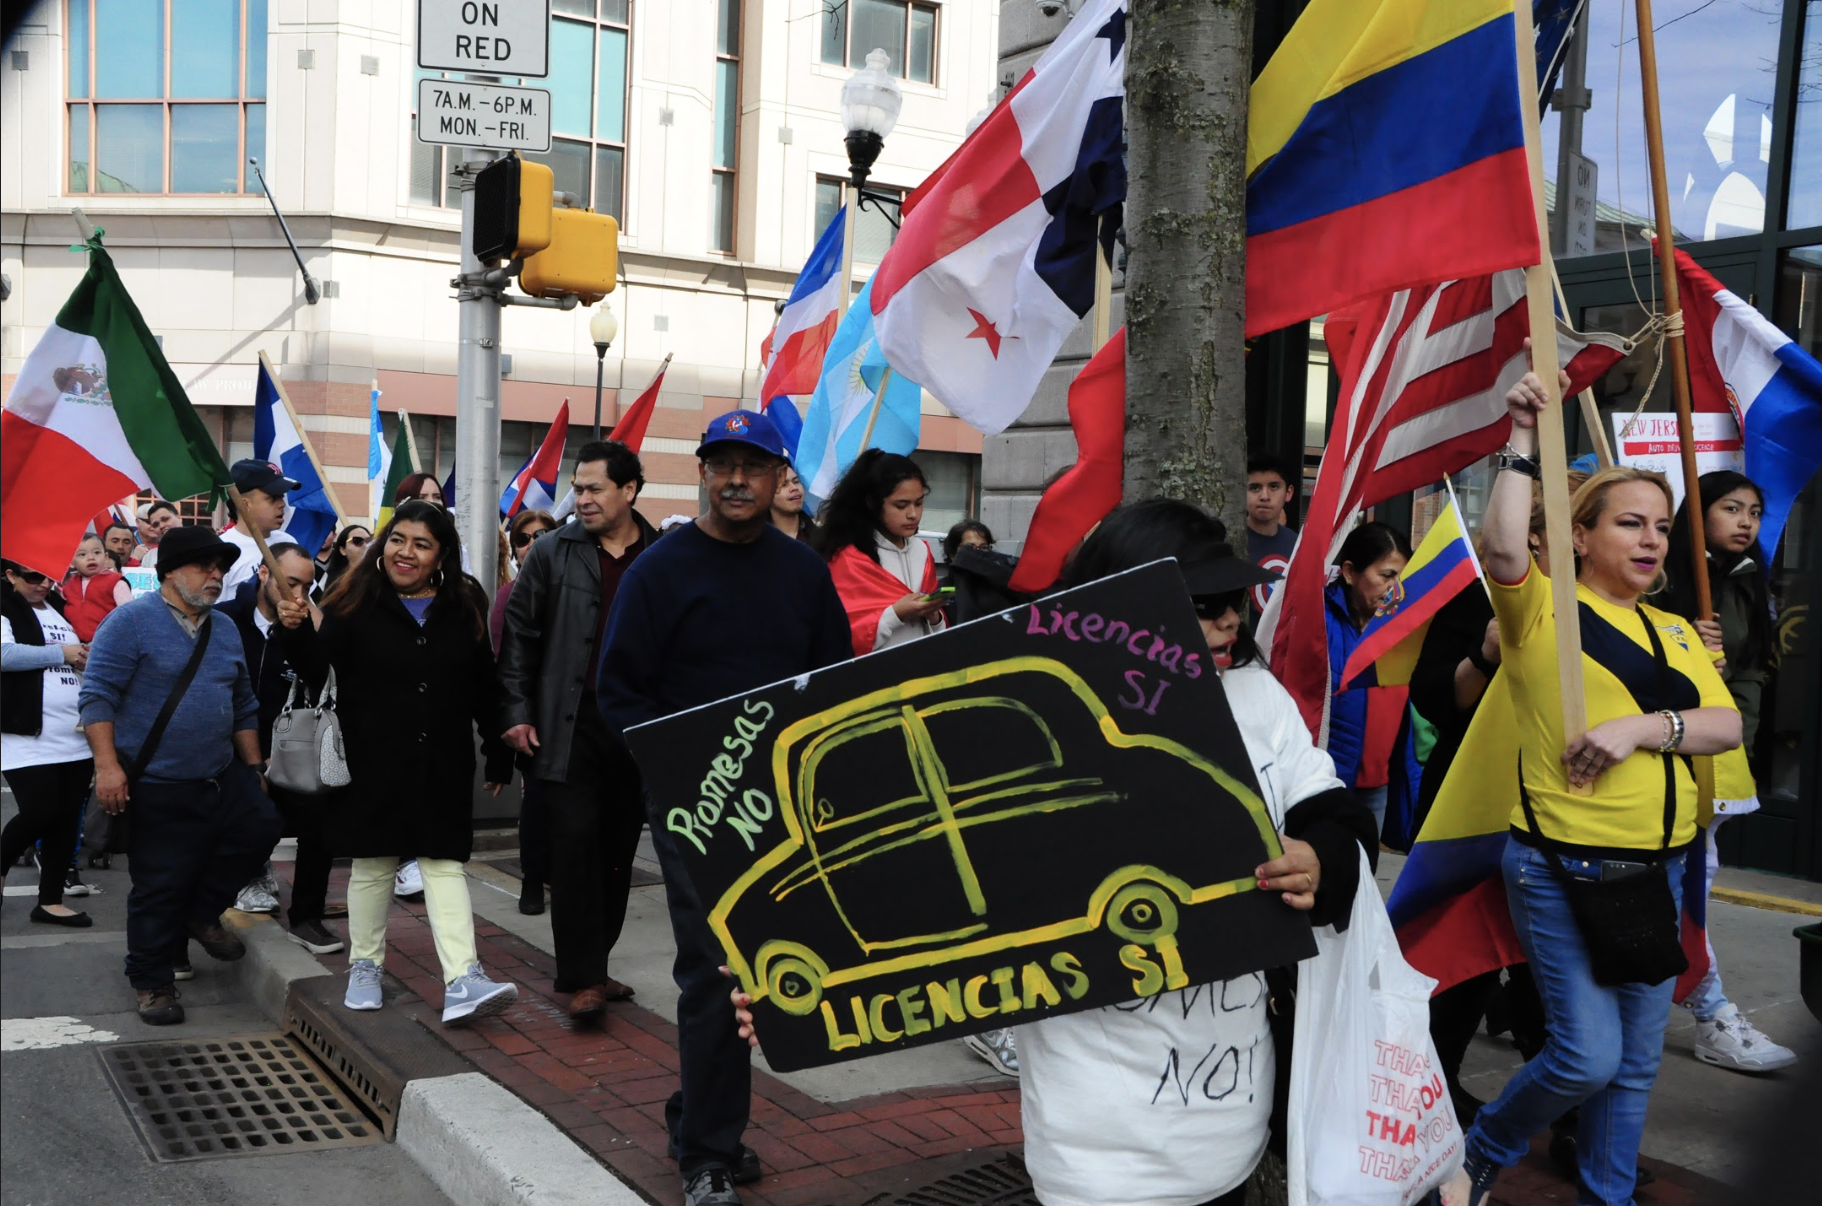 April 21,2018 - More than 700 people take the street of Trenton to voice the urgency of Drivers Licenses for the undocumented community in New Jersey. People came from near and far, many from Trenton and some as far as Atlantic City and Jersey City. United they chanted